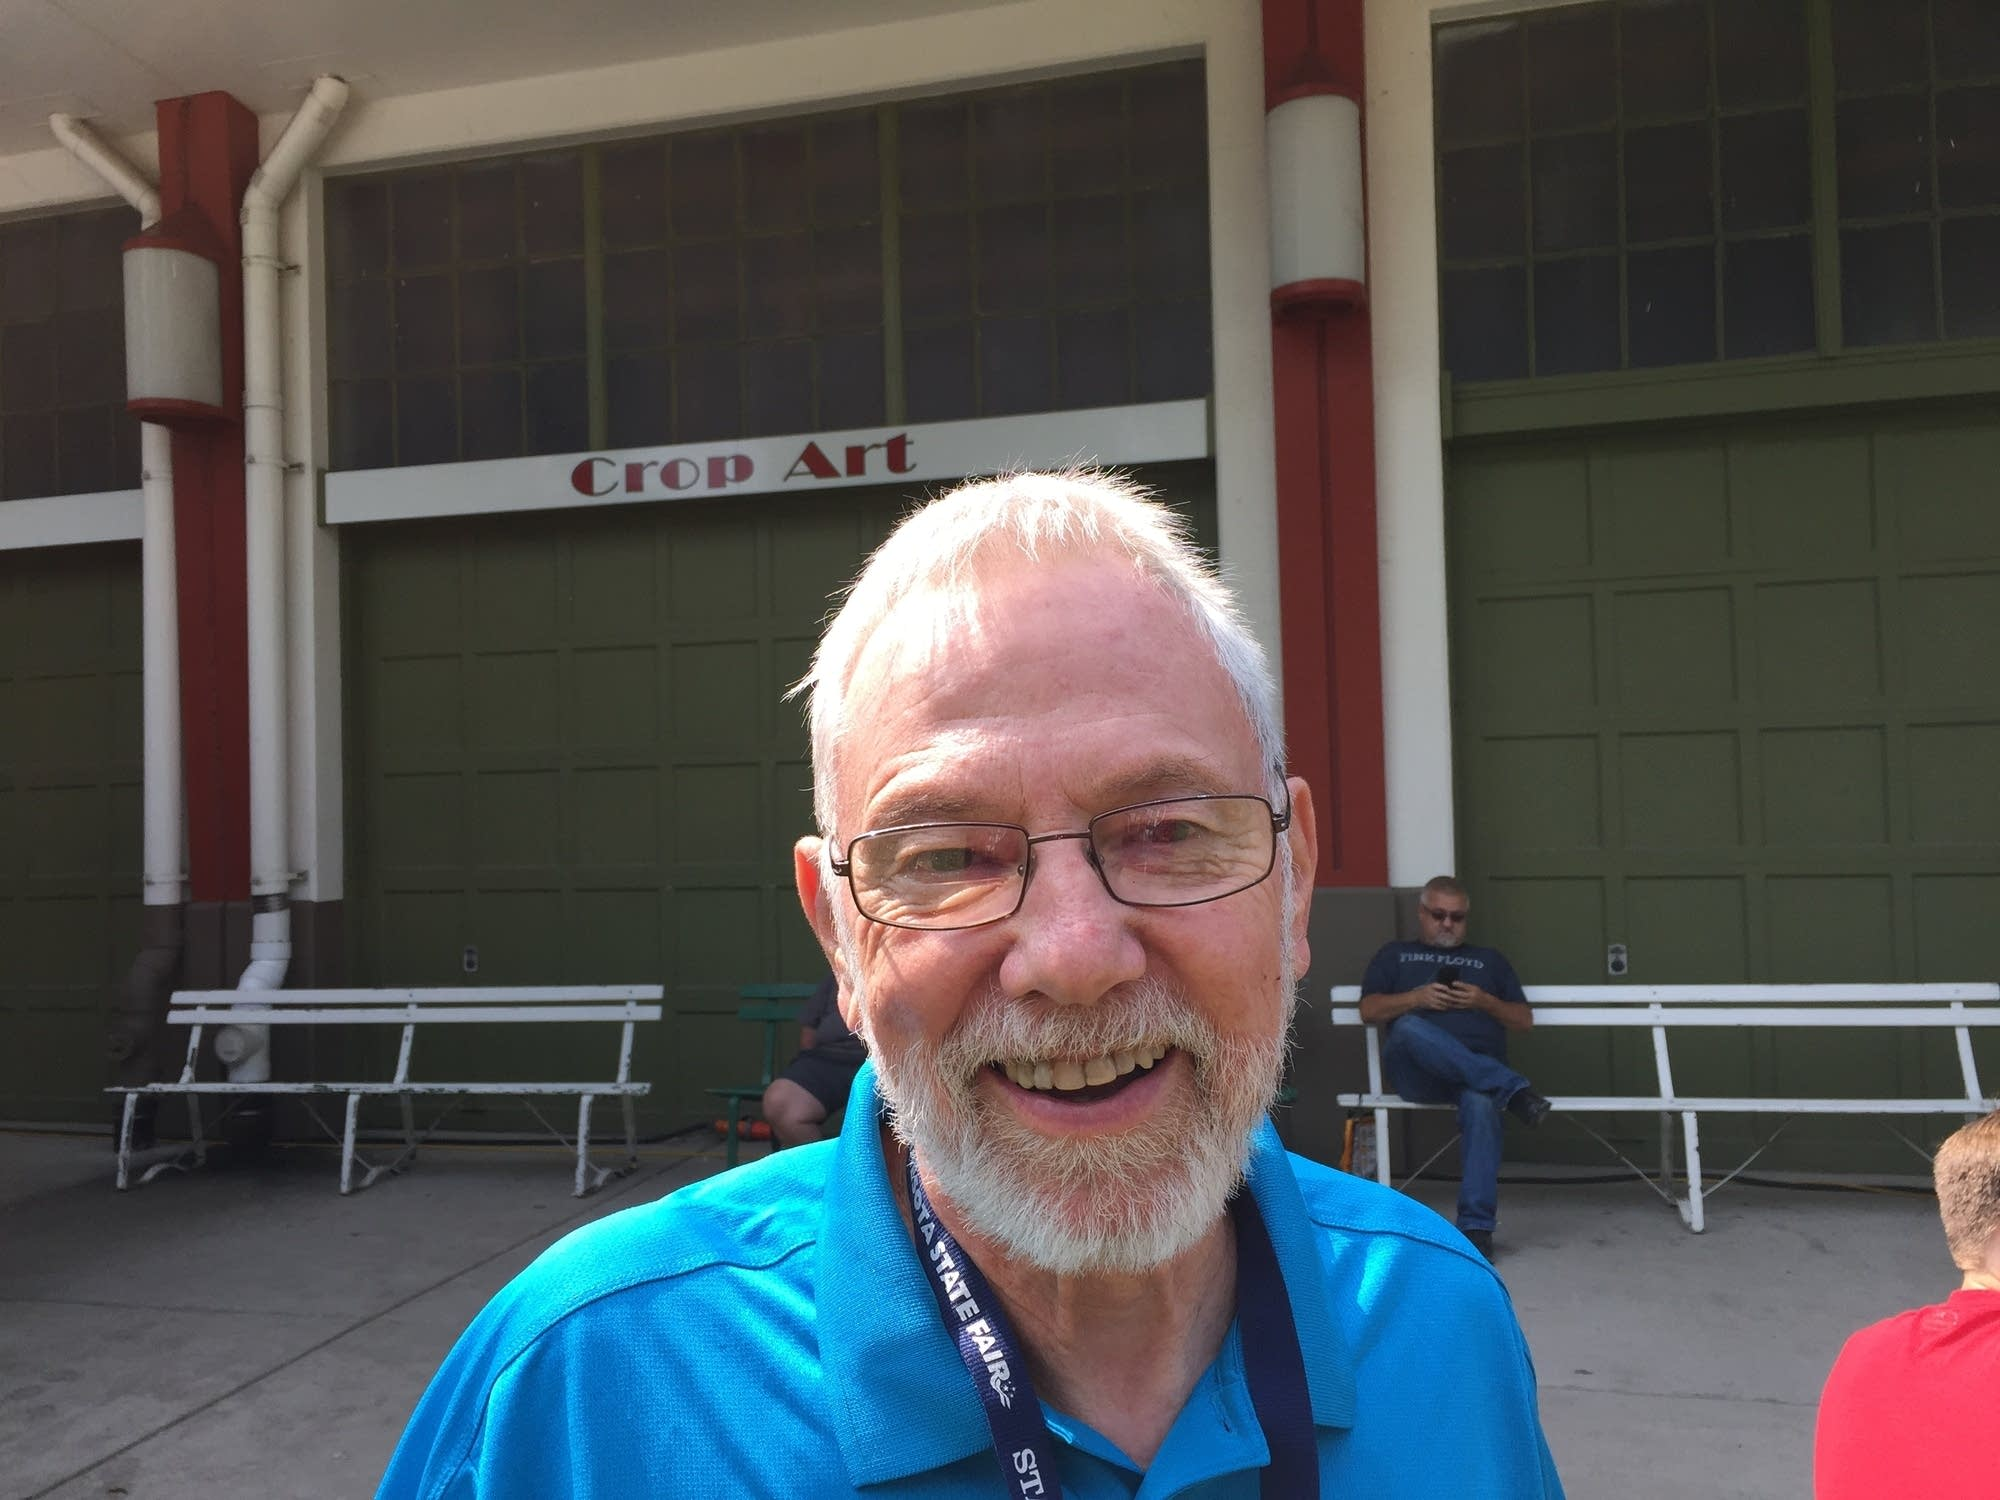 Ron Kelsey, Superintendent of Crop Art at the Minnesota State Fair